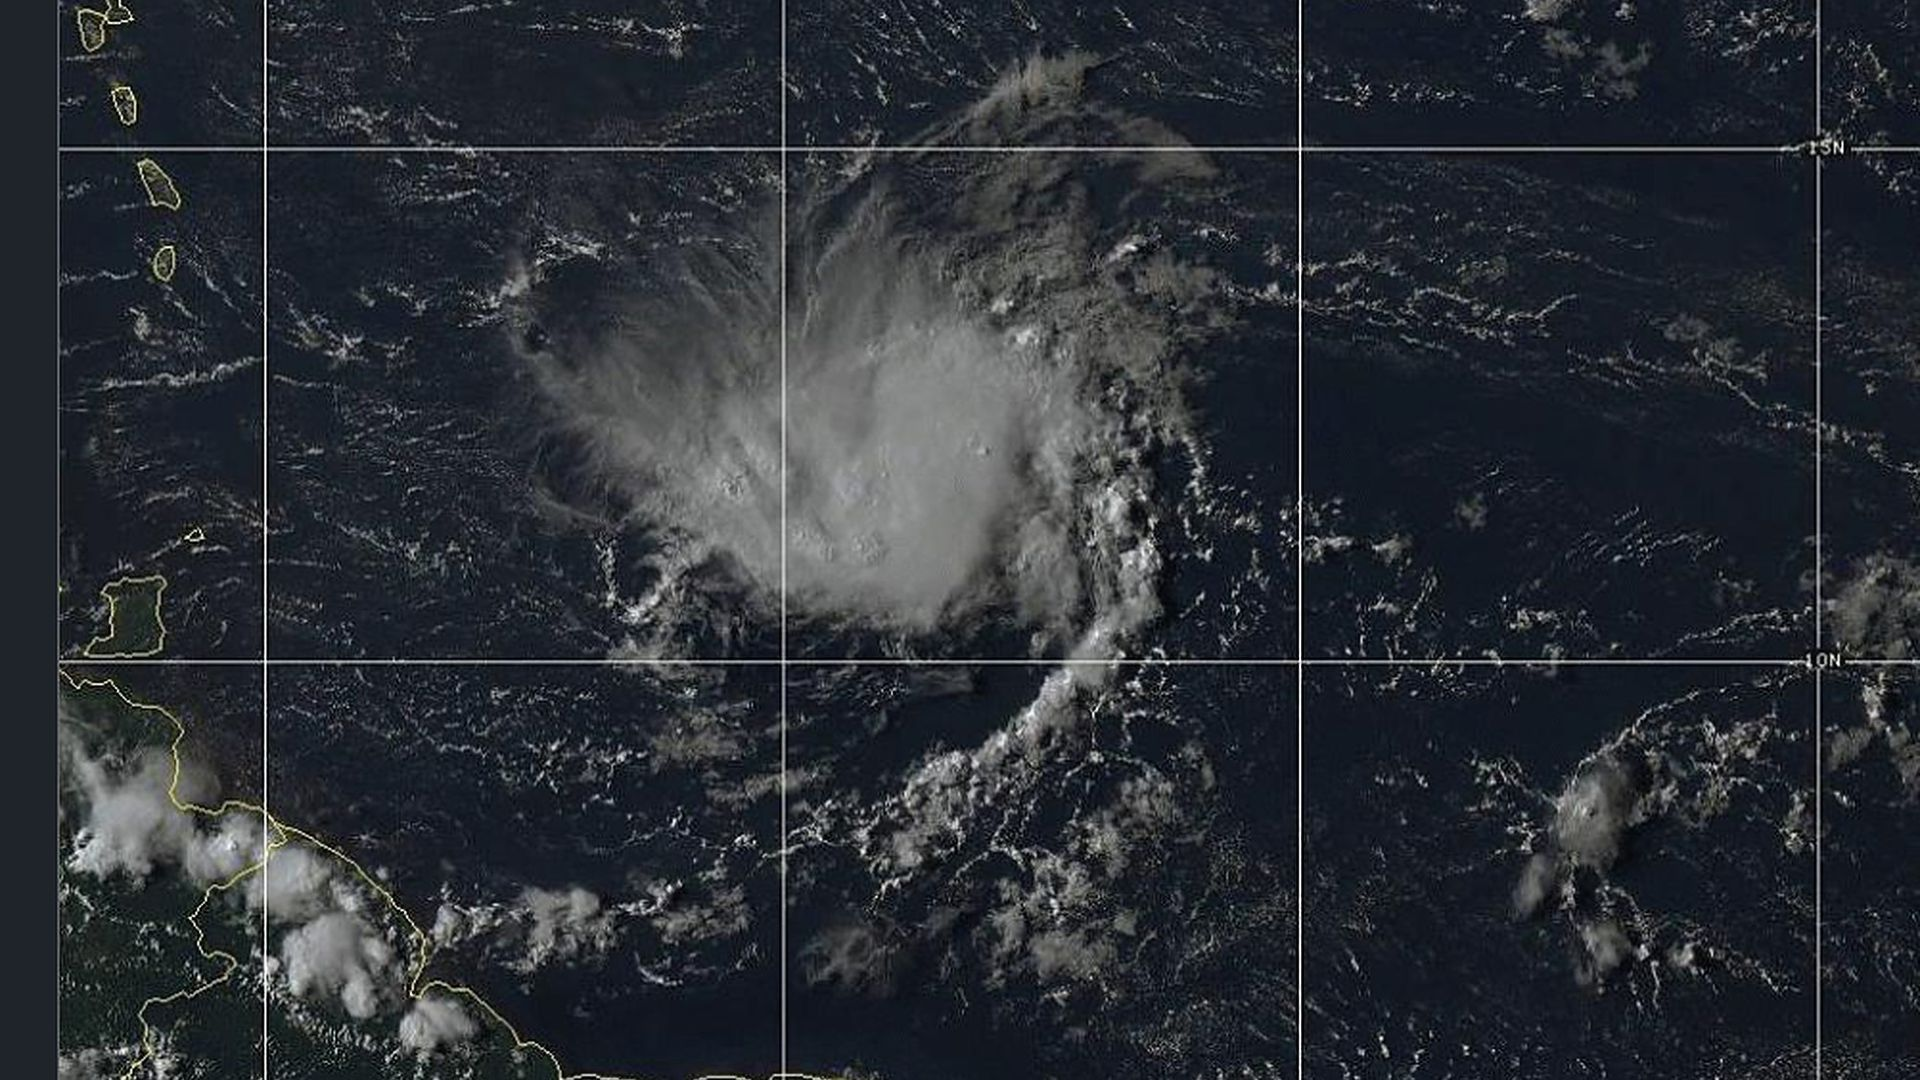 Tropical Storm Dorian may strengthen into a hurricane when it reaches Puerto Rico